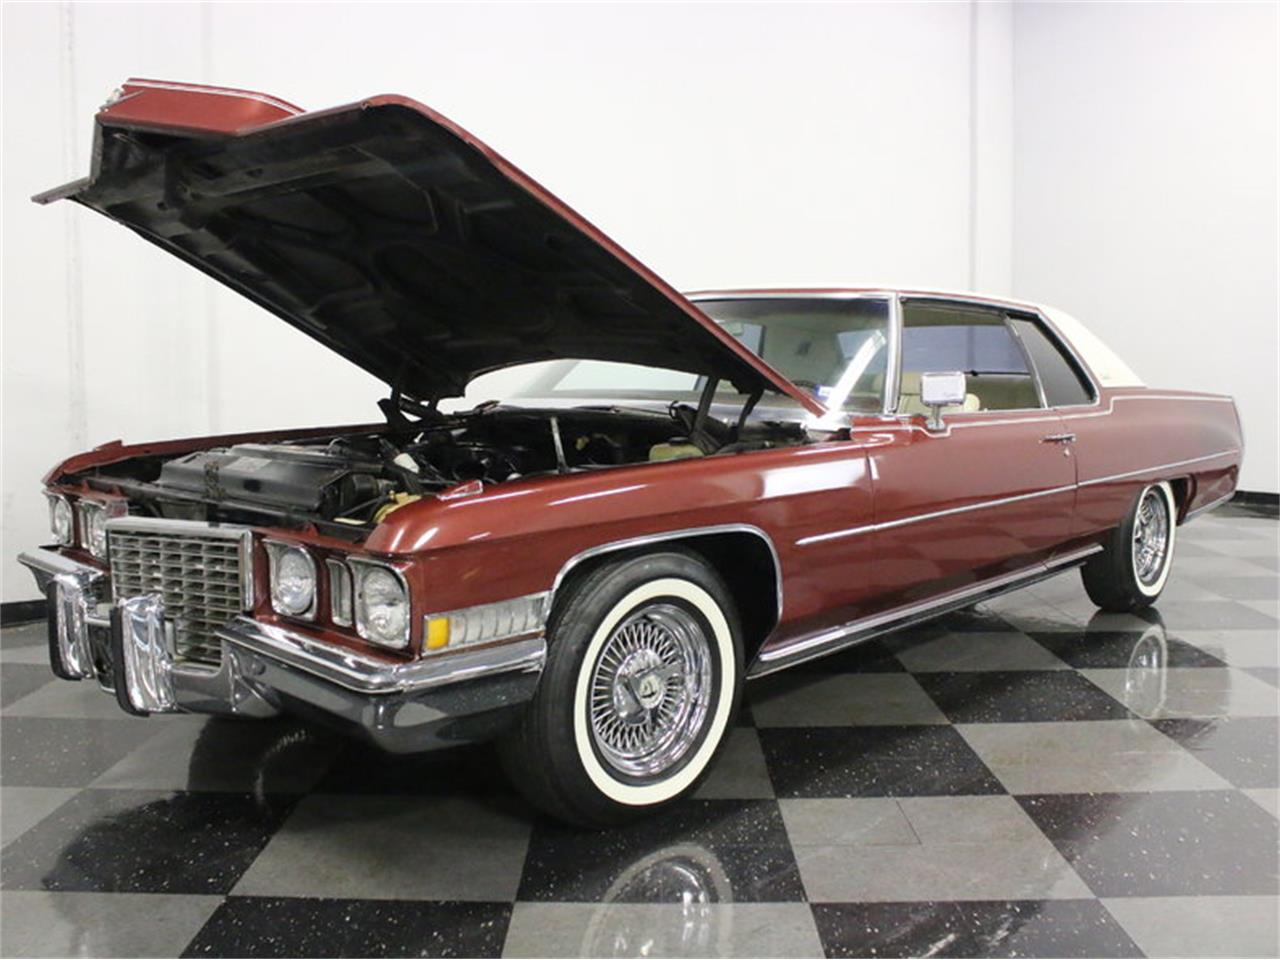 Large Picture of Classic '72 Cadillac Coupe DeVille located in Ft Worth Texas - $9,995.00 - L1A0